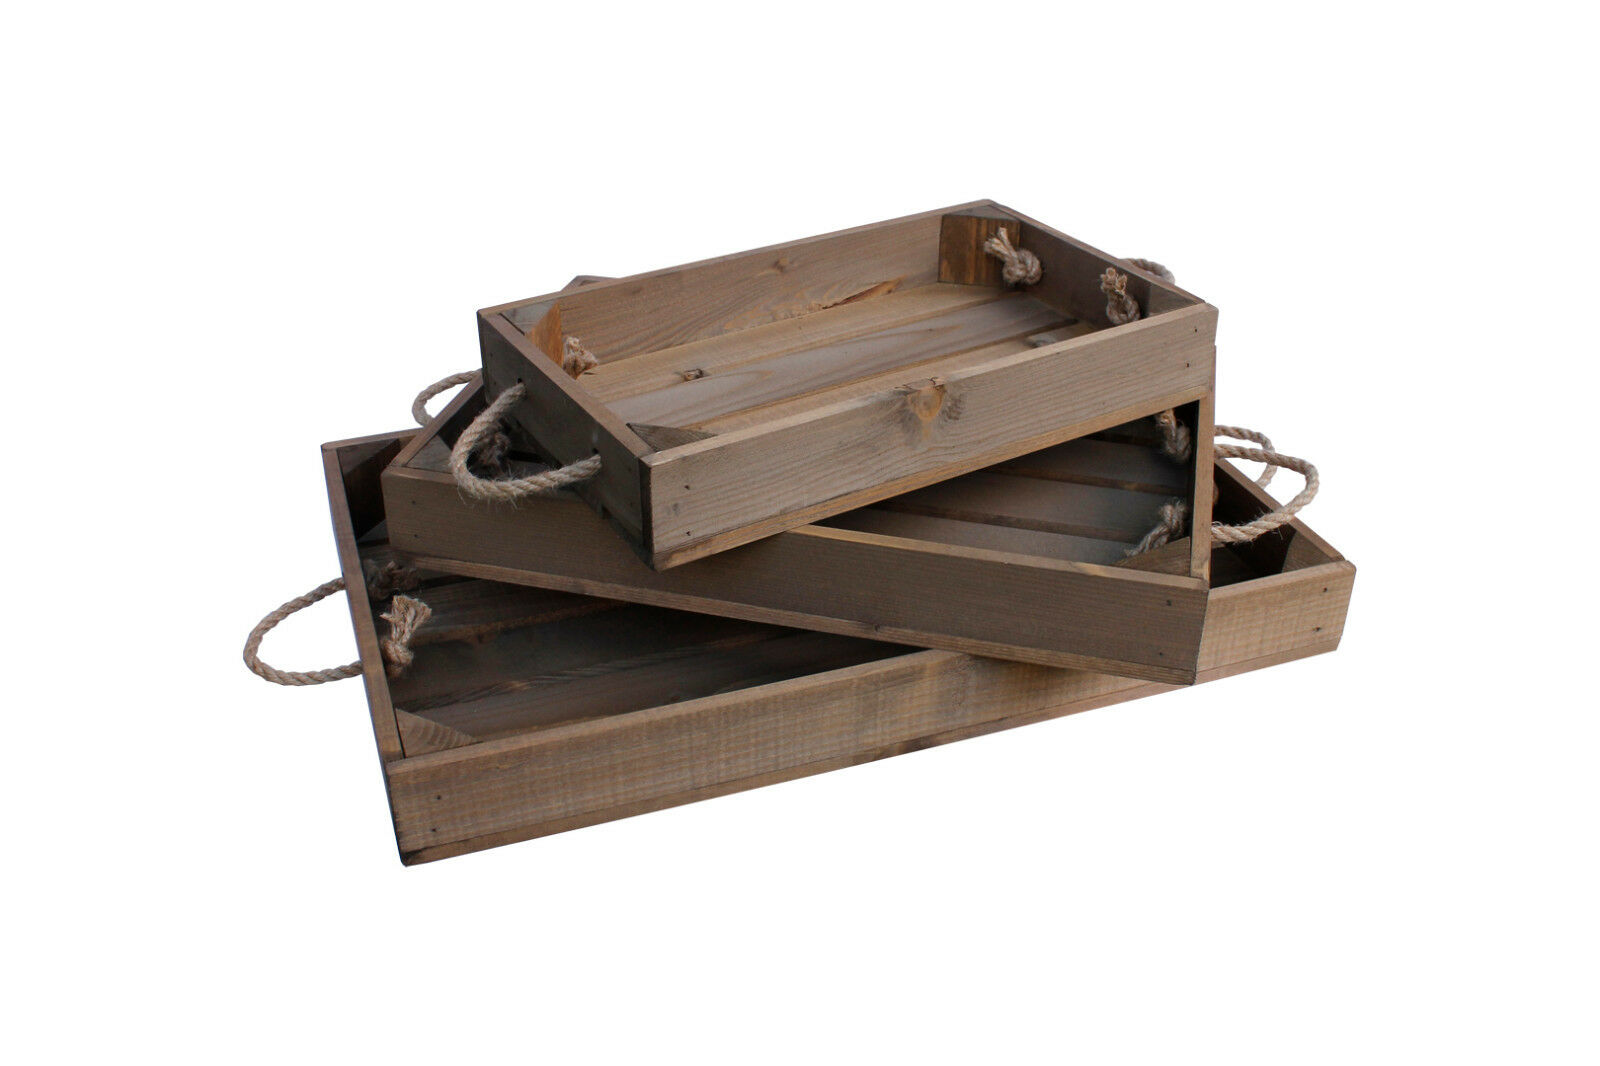 Christmas Red Vintage Style Apple Crate Wooden Box Display With Rope Handles